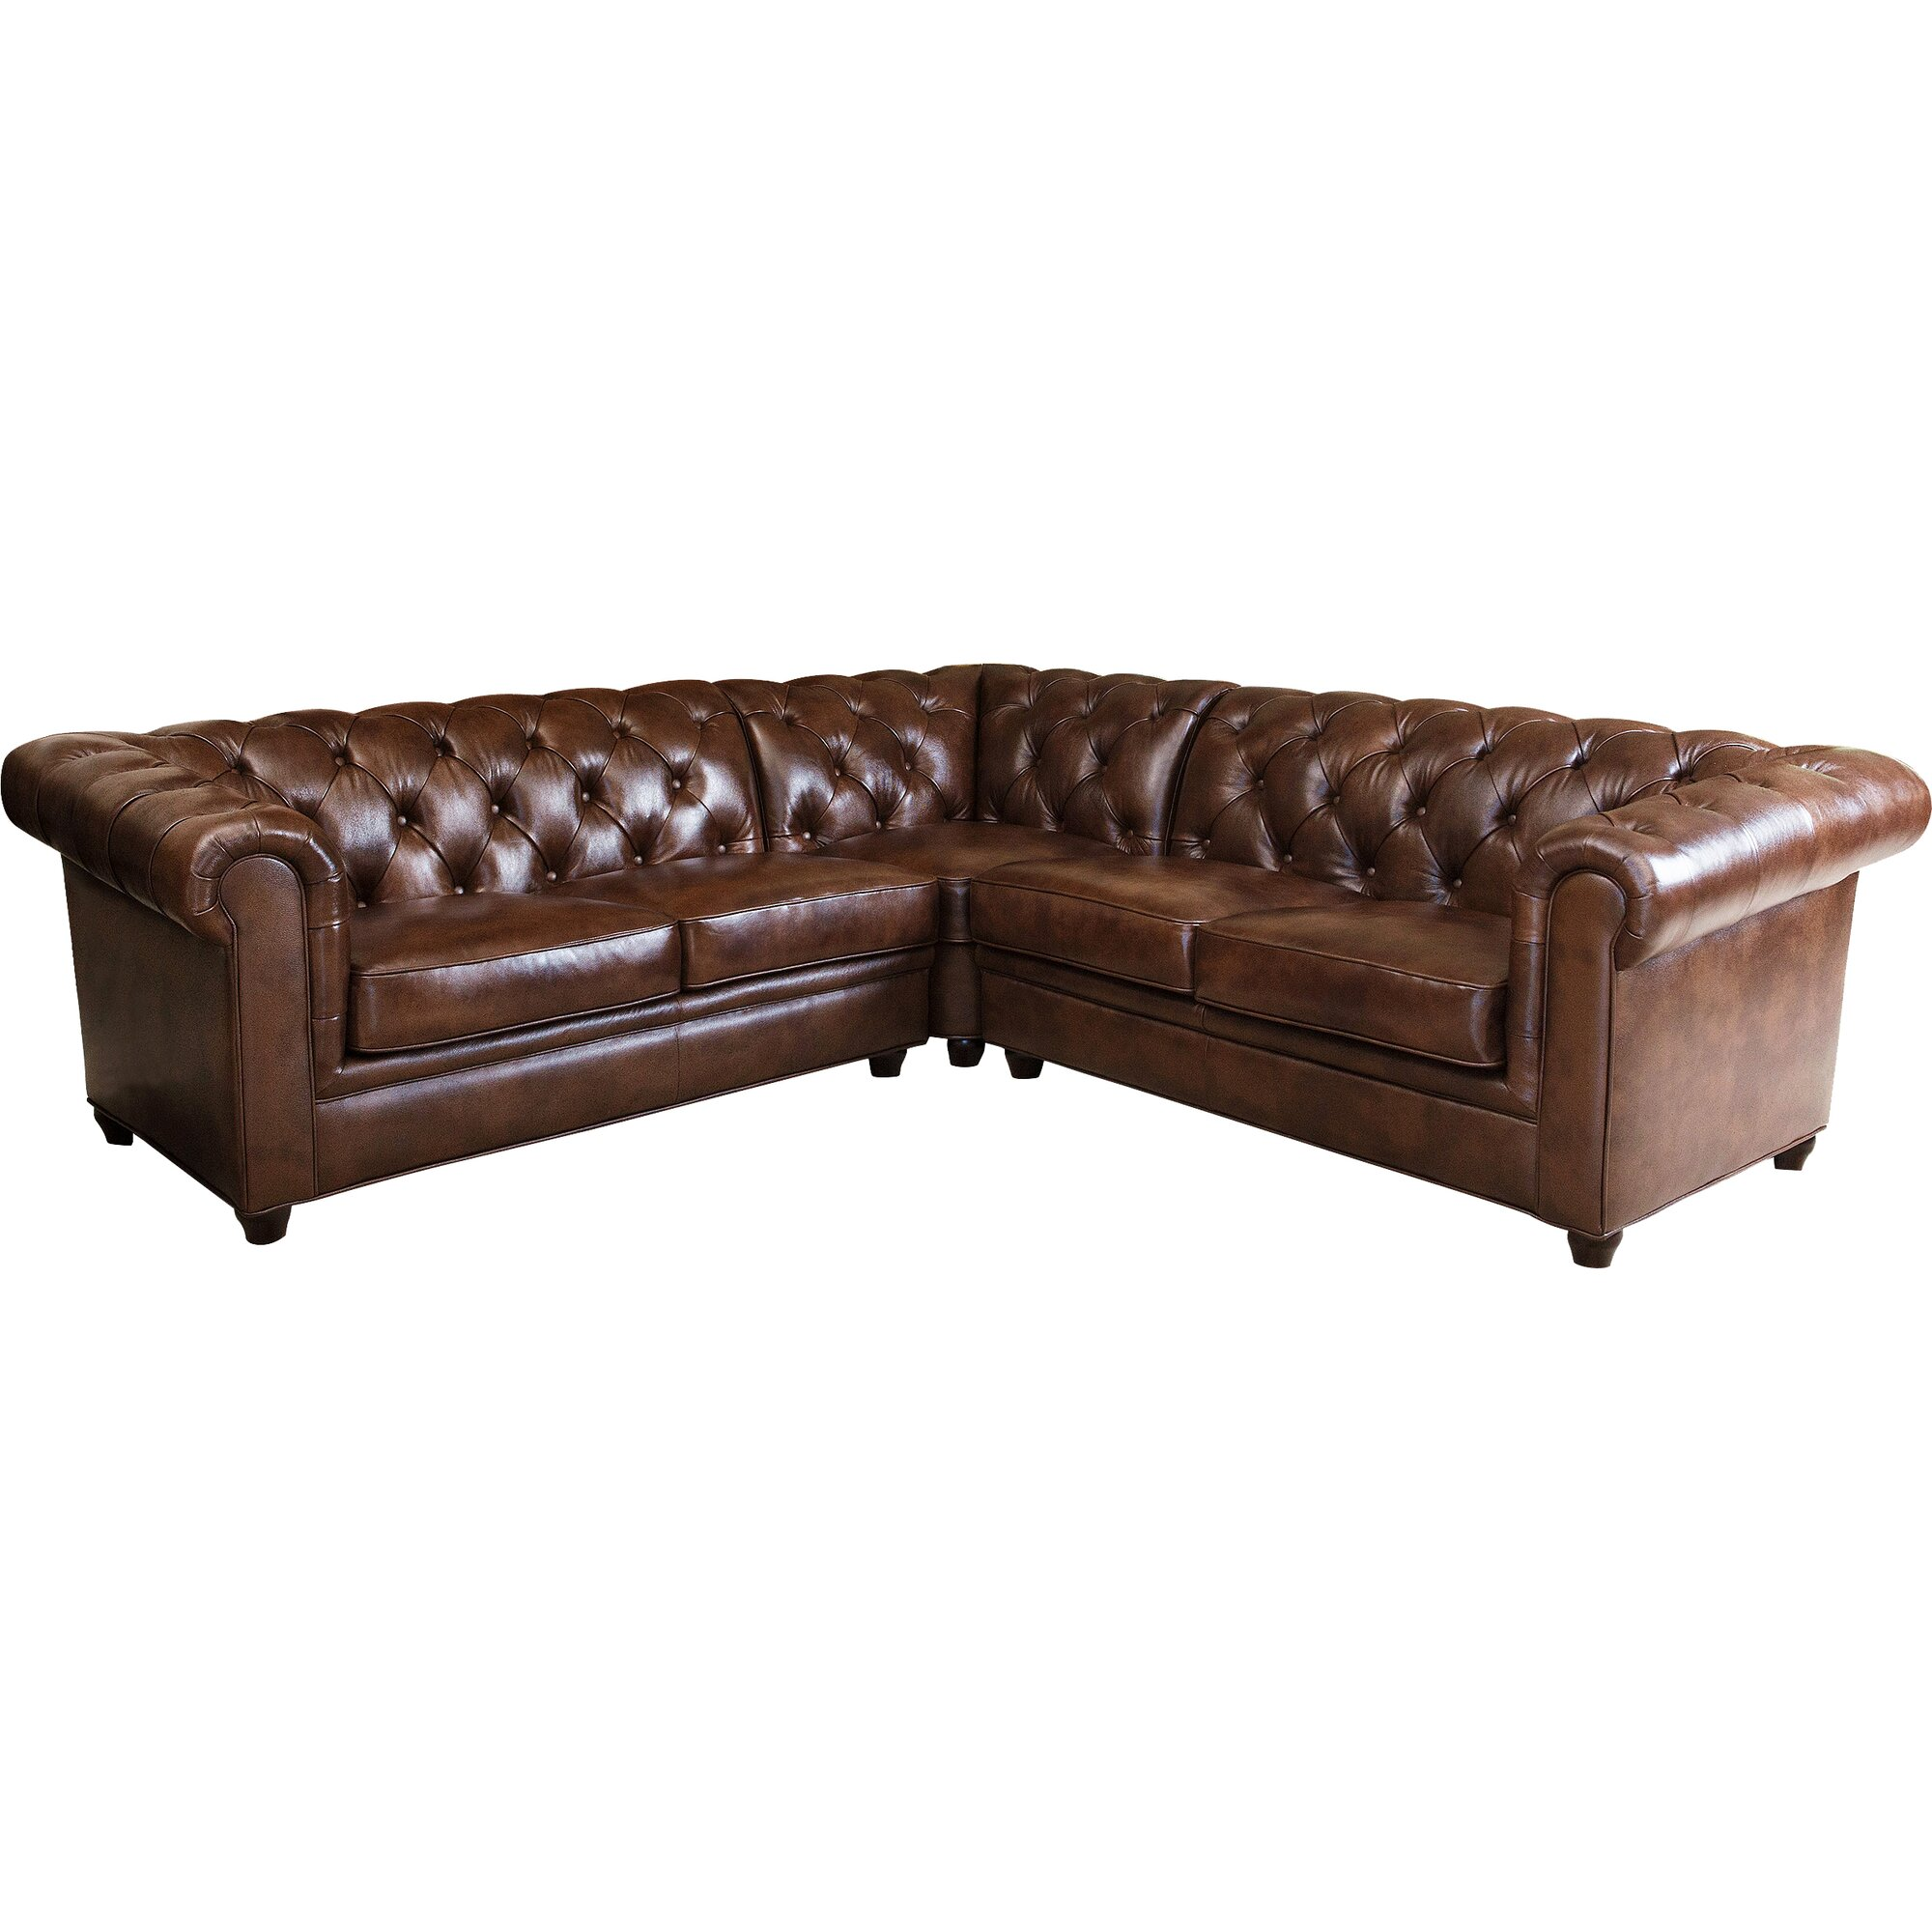 Darby Home Co Lapointe Sectional Collection & Reviews